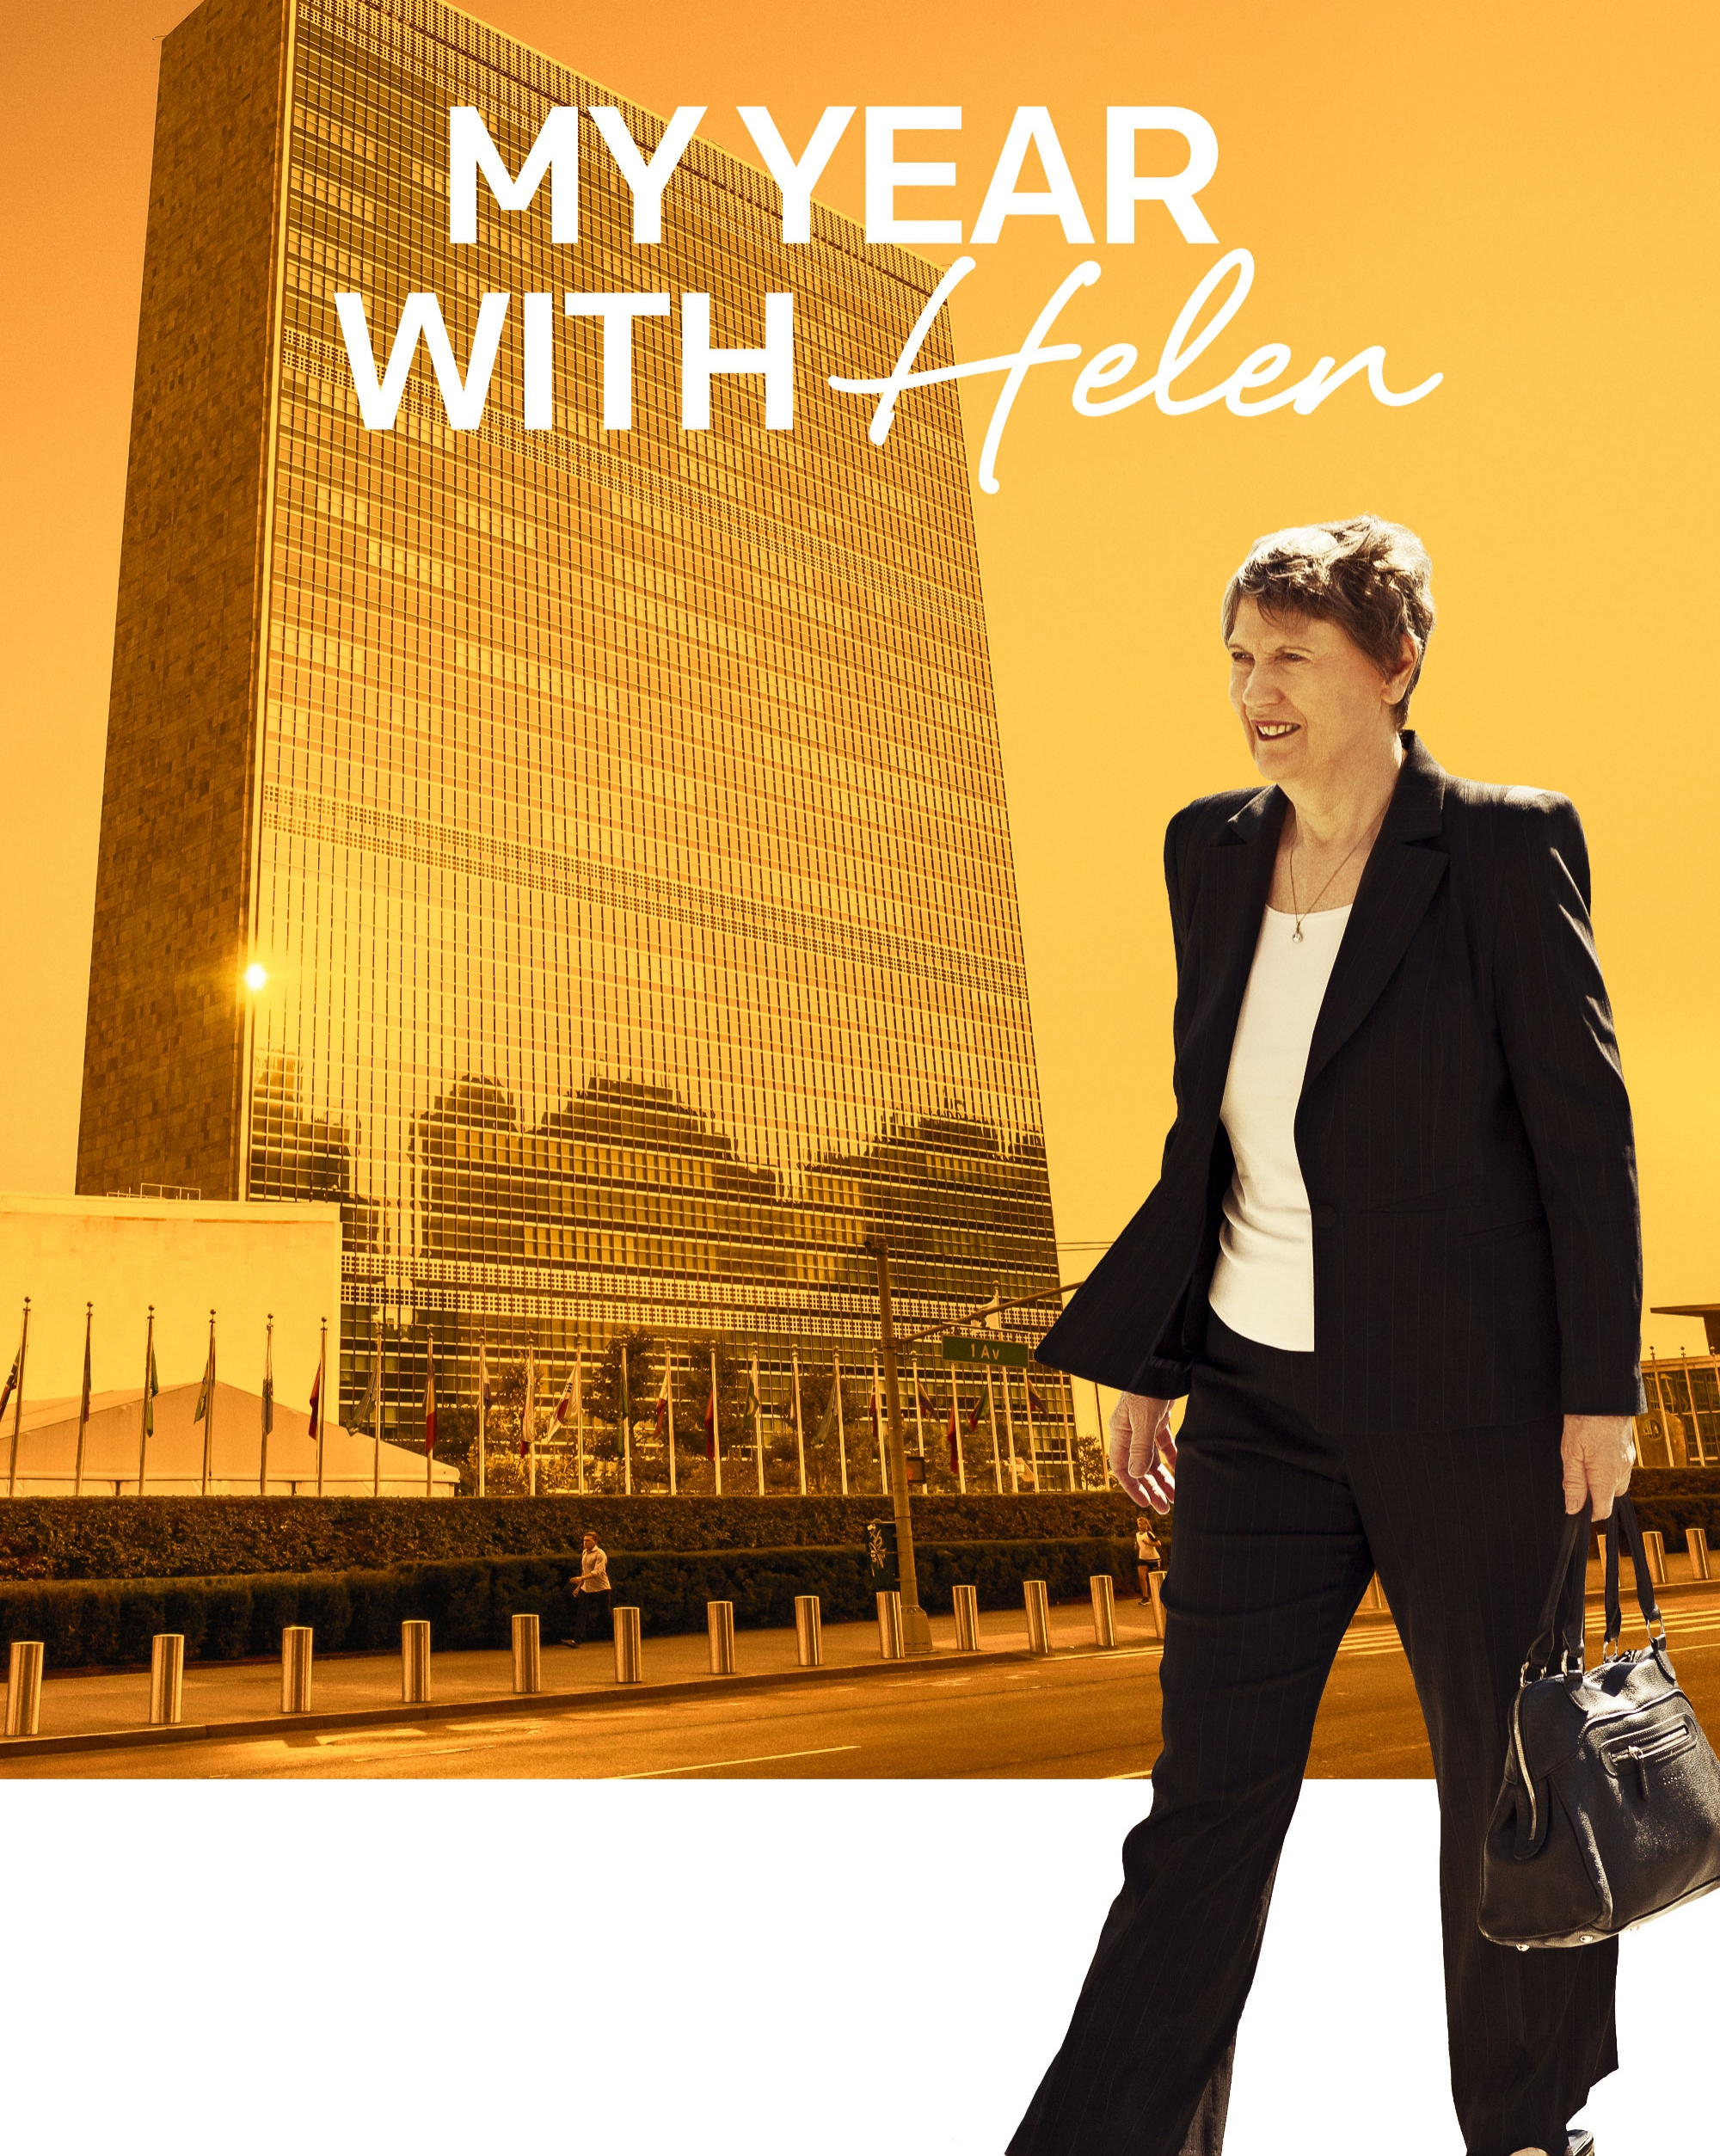 """Here is a chance to see some of the inside workings of one of the world's largest, most important organisations from the viewpoint of a former New Zealand Prime Minister. There is a film about to be release called """"My Year with Helen."""""""